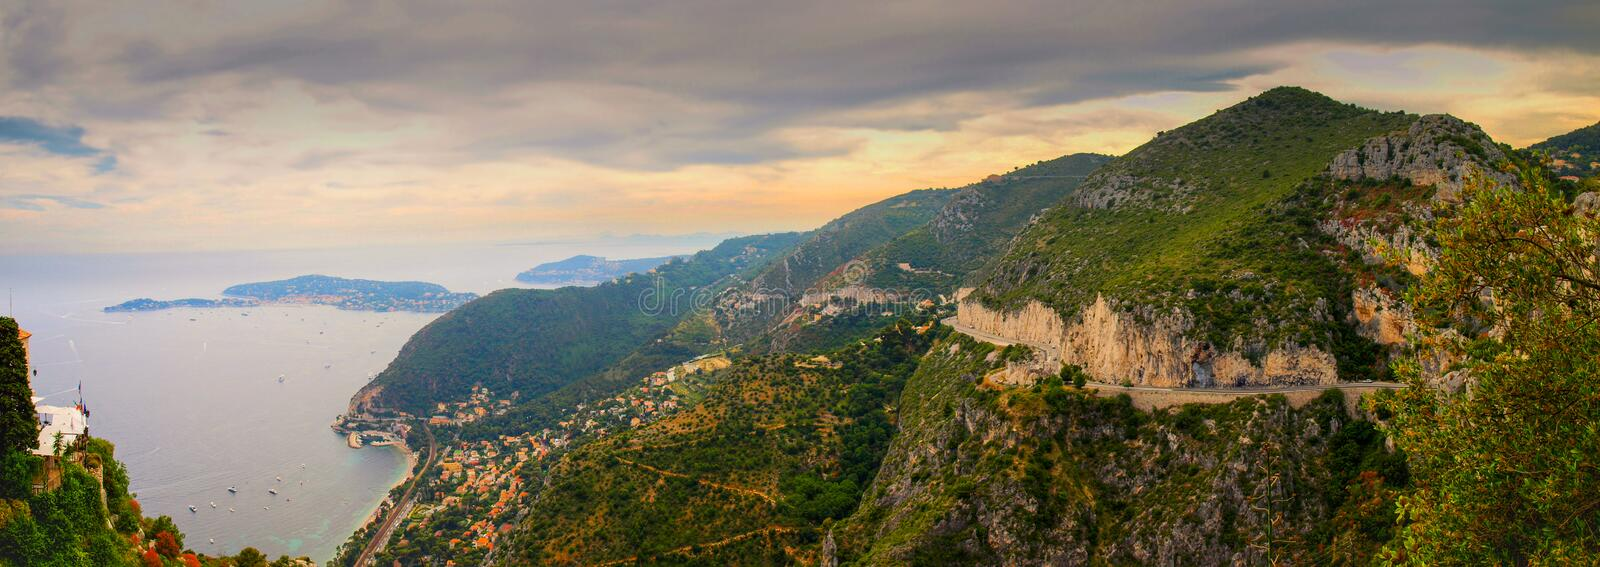 Panoramic view over the coastal line of Cote d`Azure and Mediterranean Sea royalty free stock image